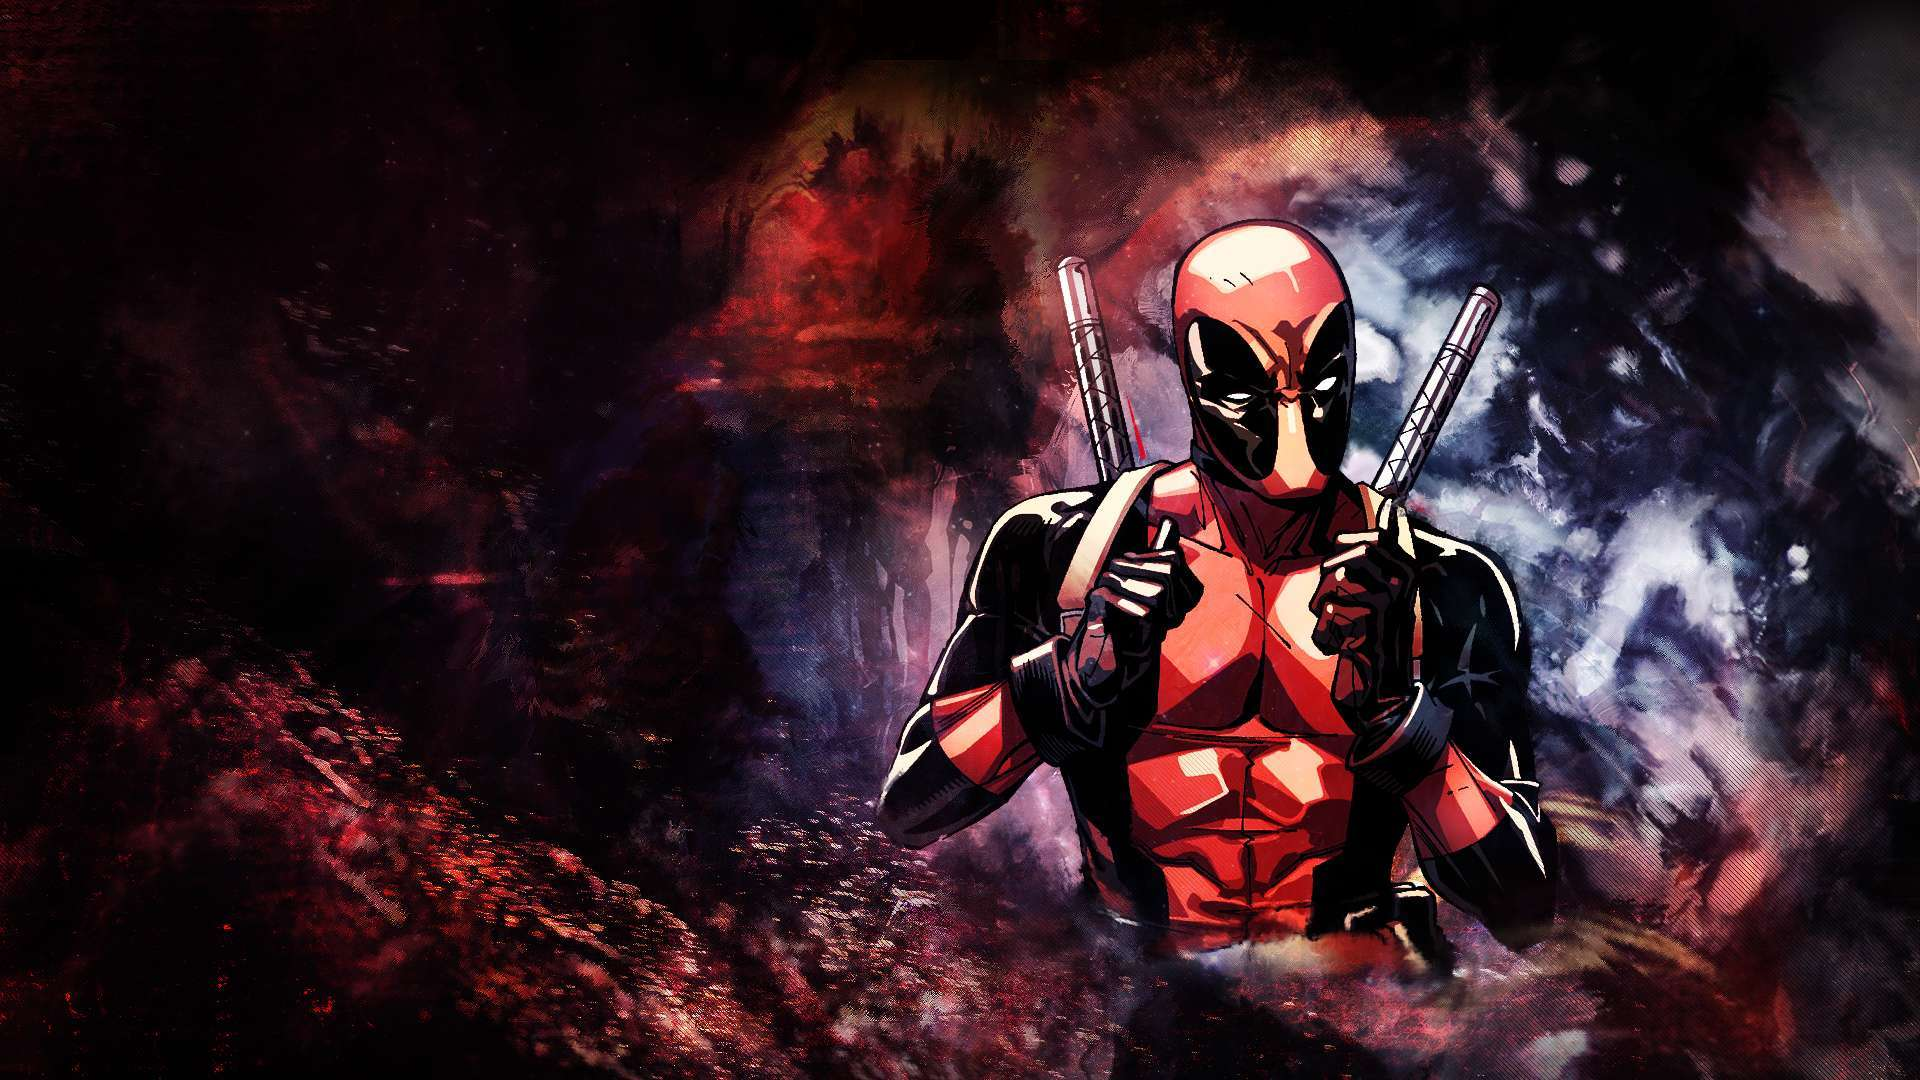 Deadpool-1920x1080-Walla-akeh-wallpaper-wp3604694